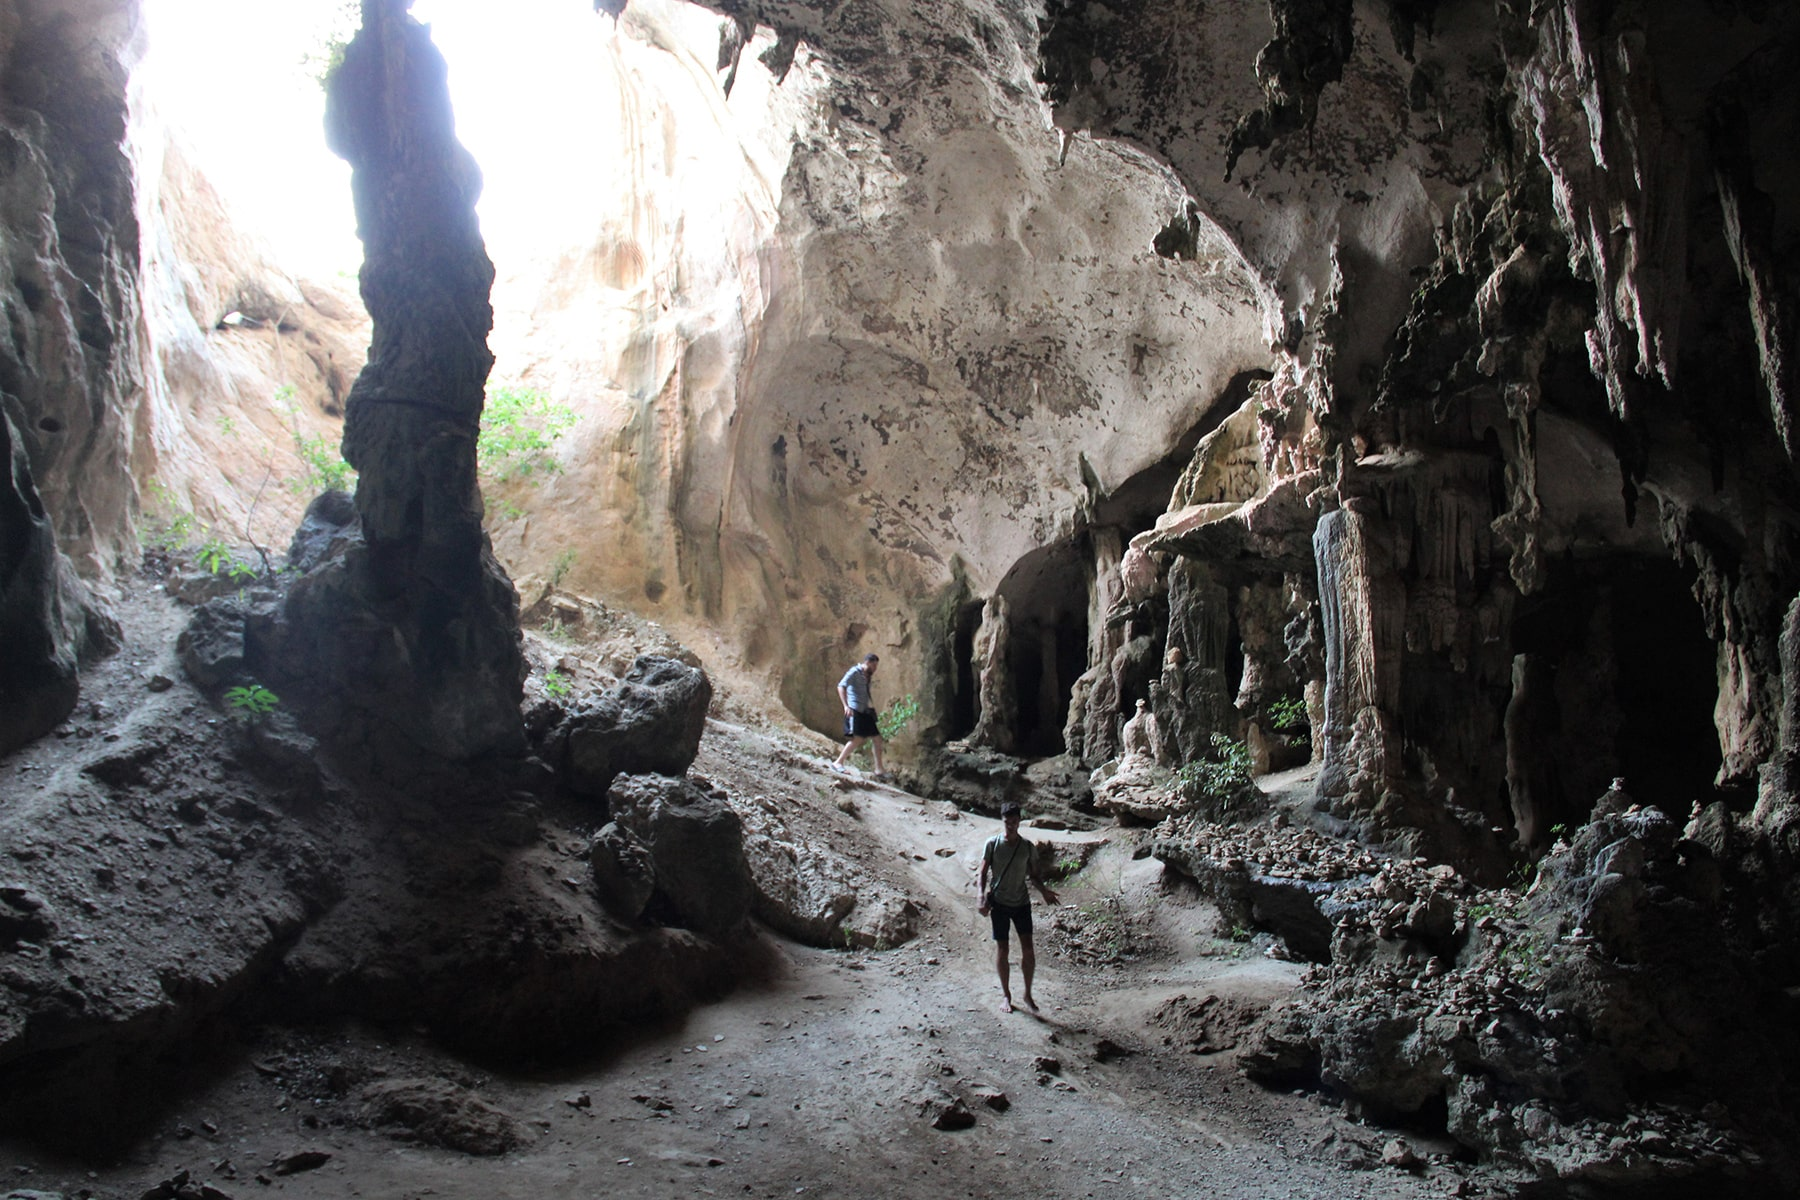 Caves in Krabi national park